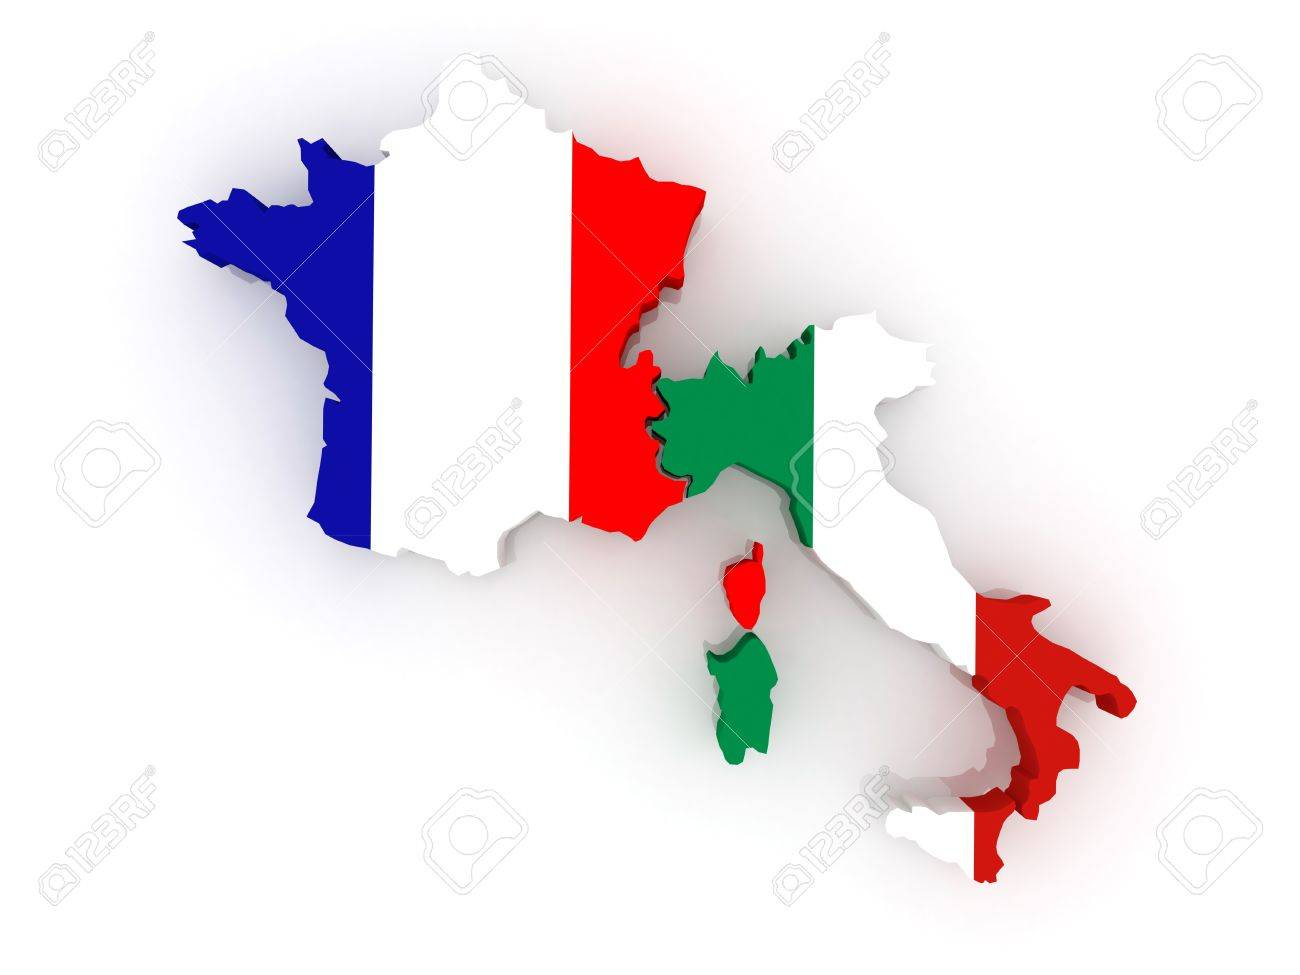 Map Of France And Italy 3d Stock Photo, Picture And Royalty Free ...